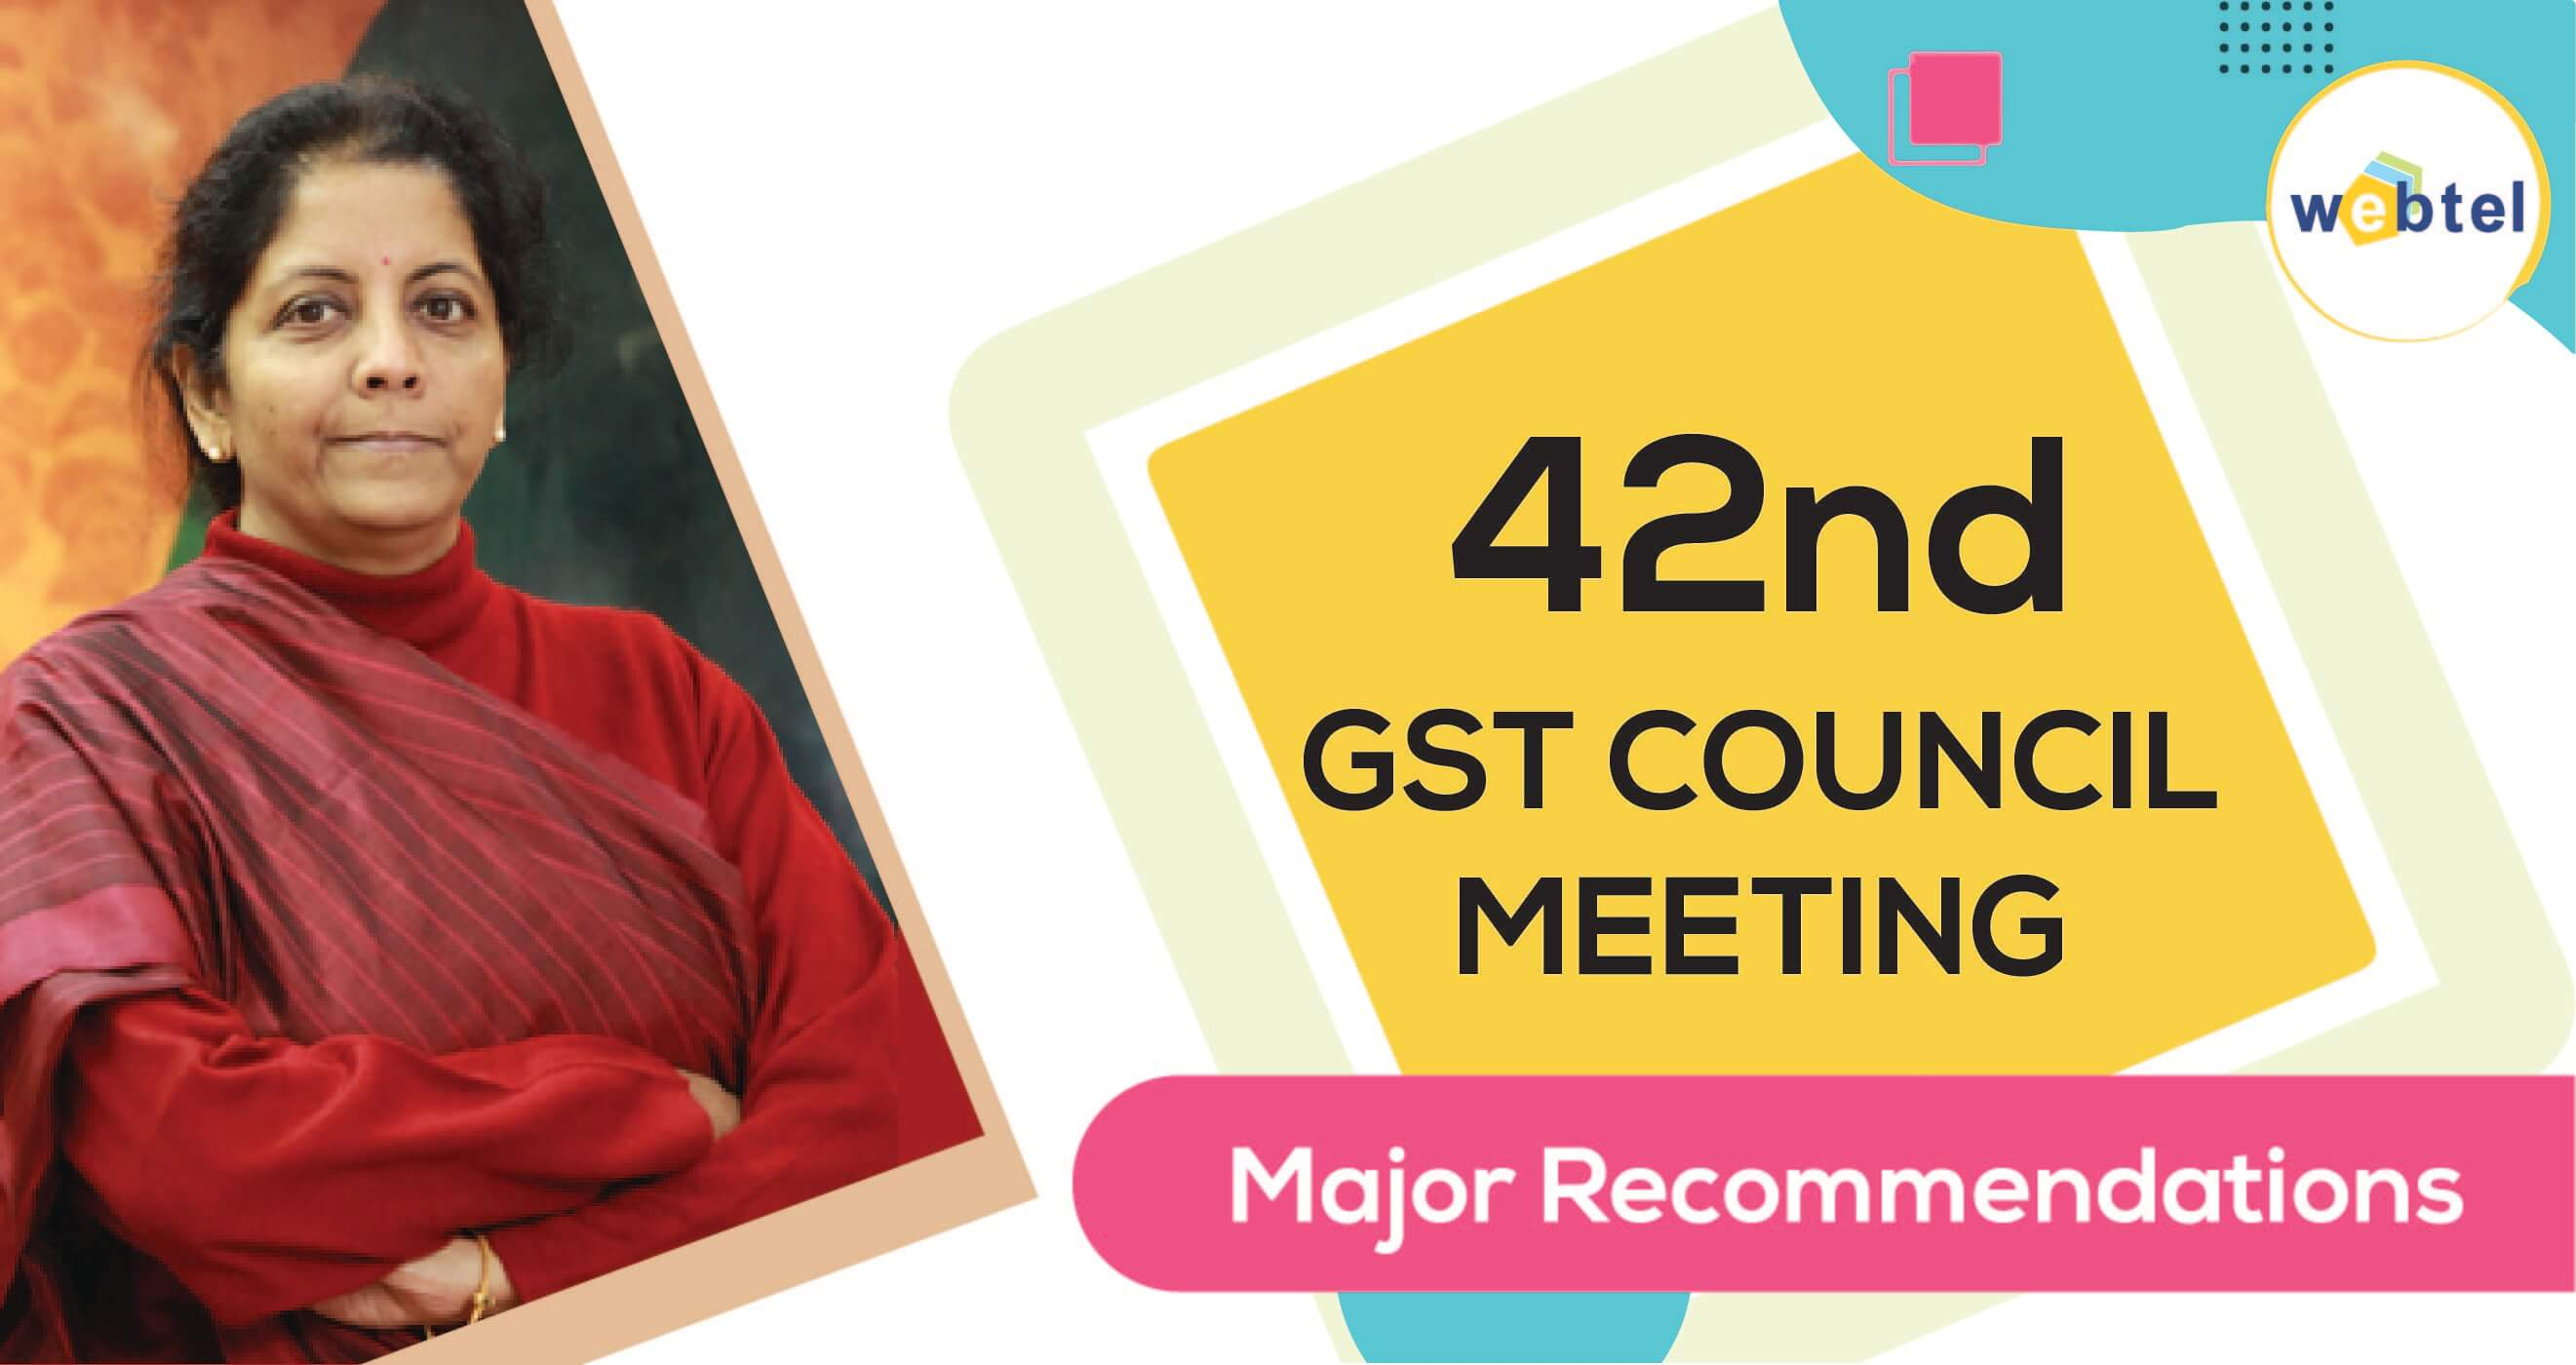 42nd GST Council Meeting - Highlights and Latest News